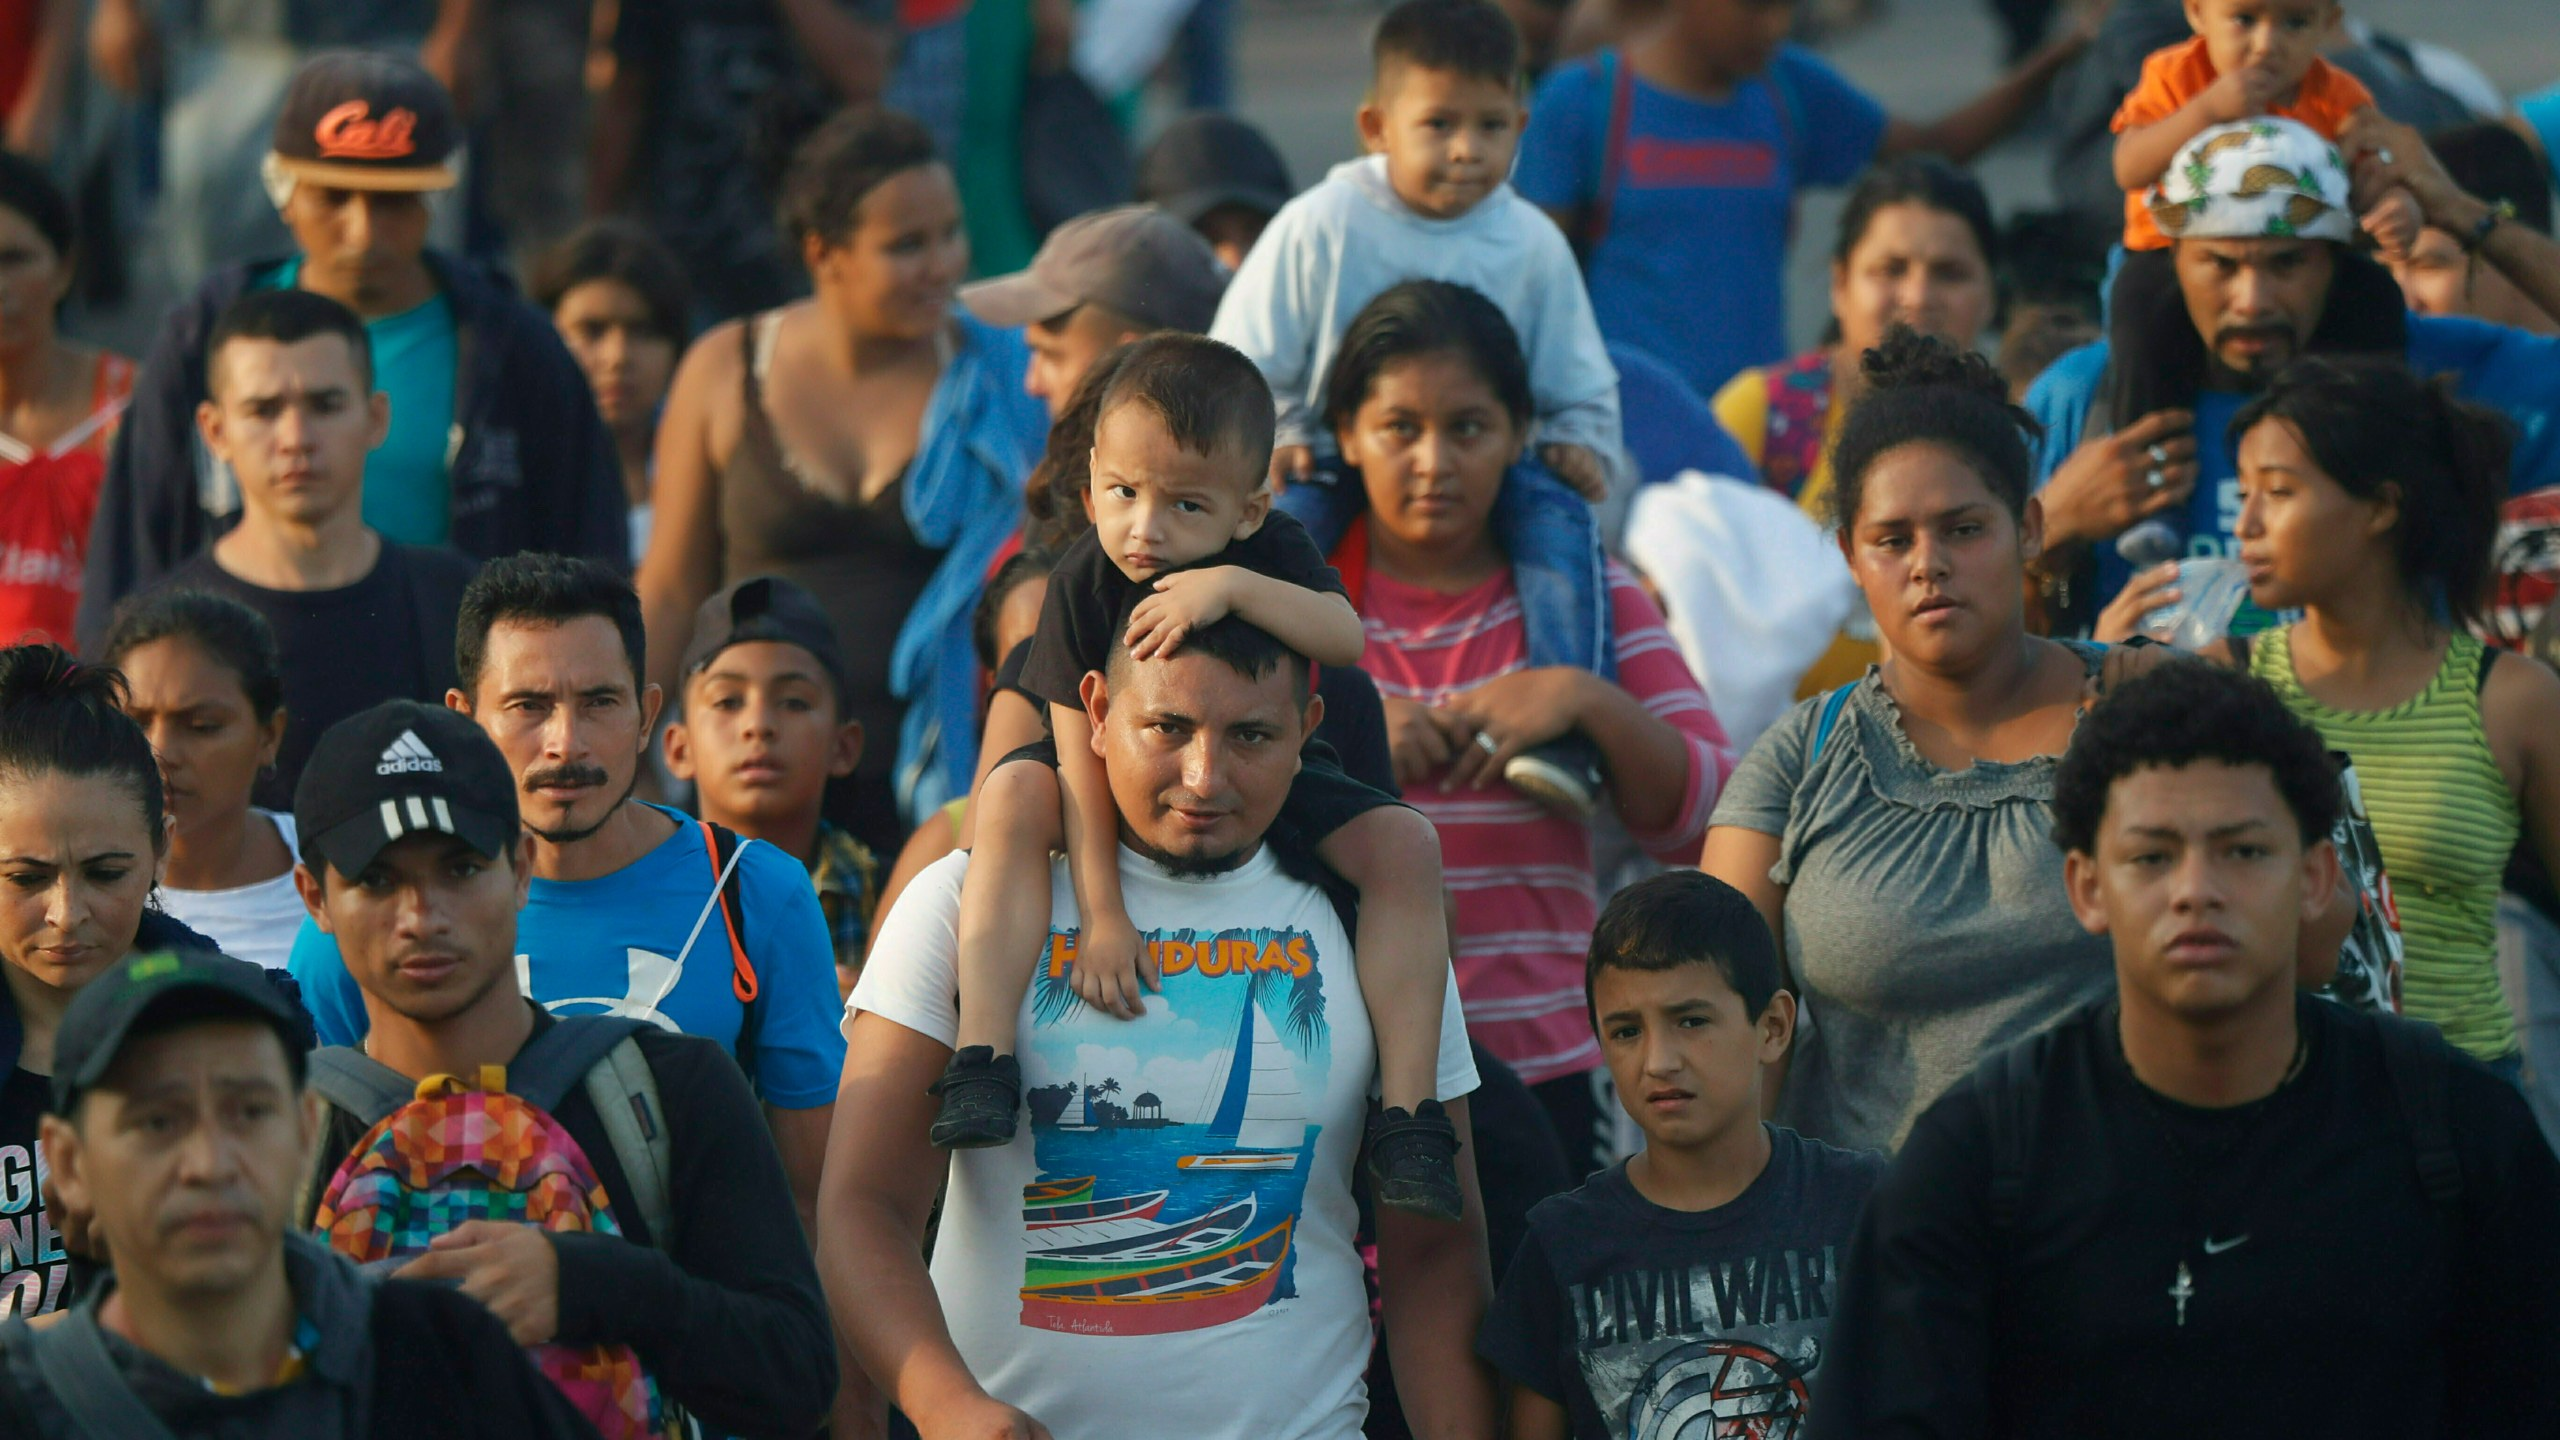 APTOPIX_Mexico_Migrants_33402-159532.jpg83922049